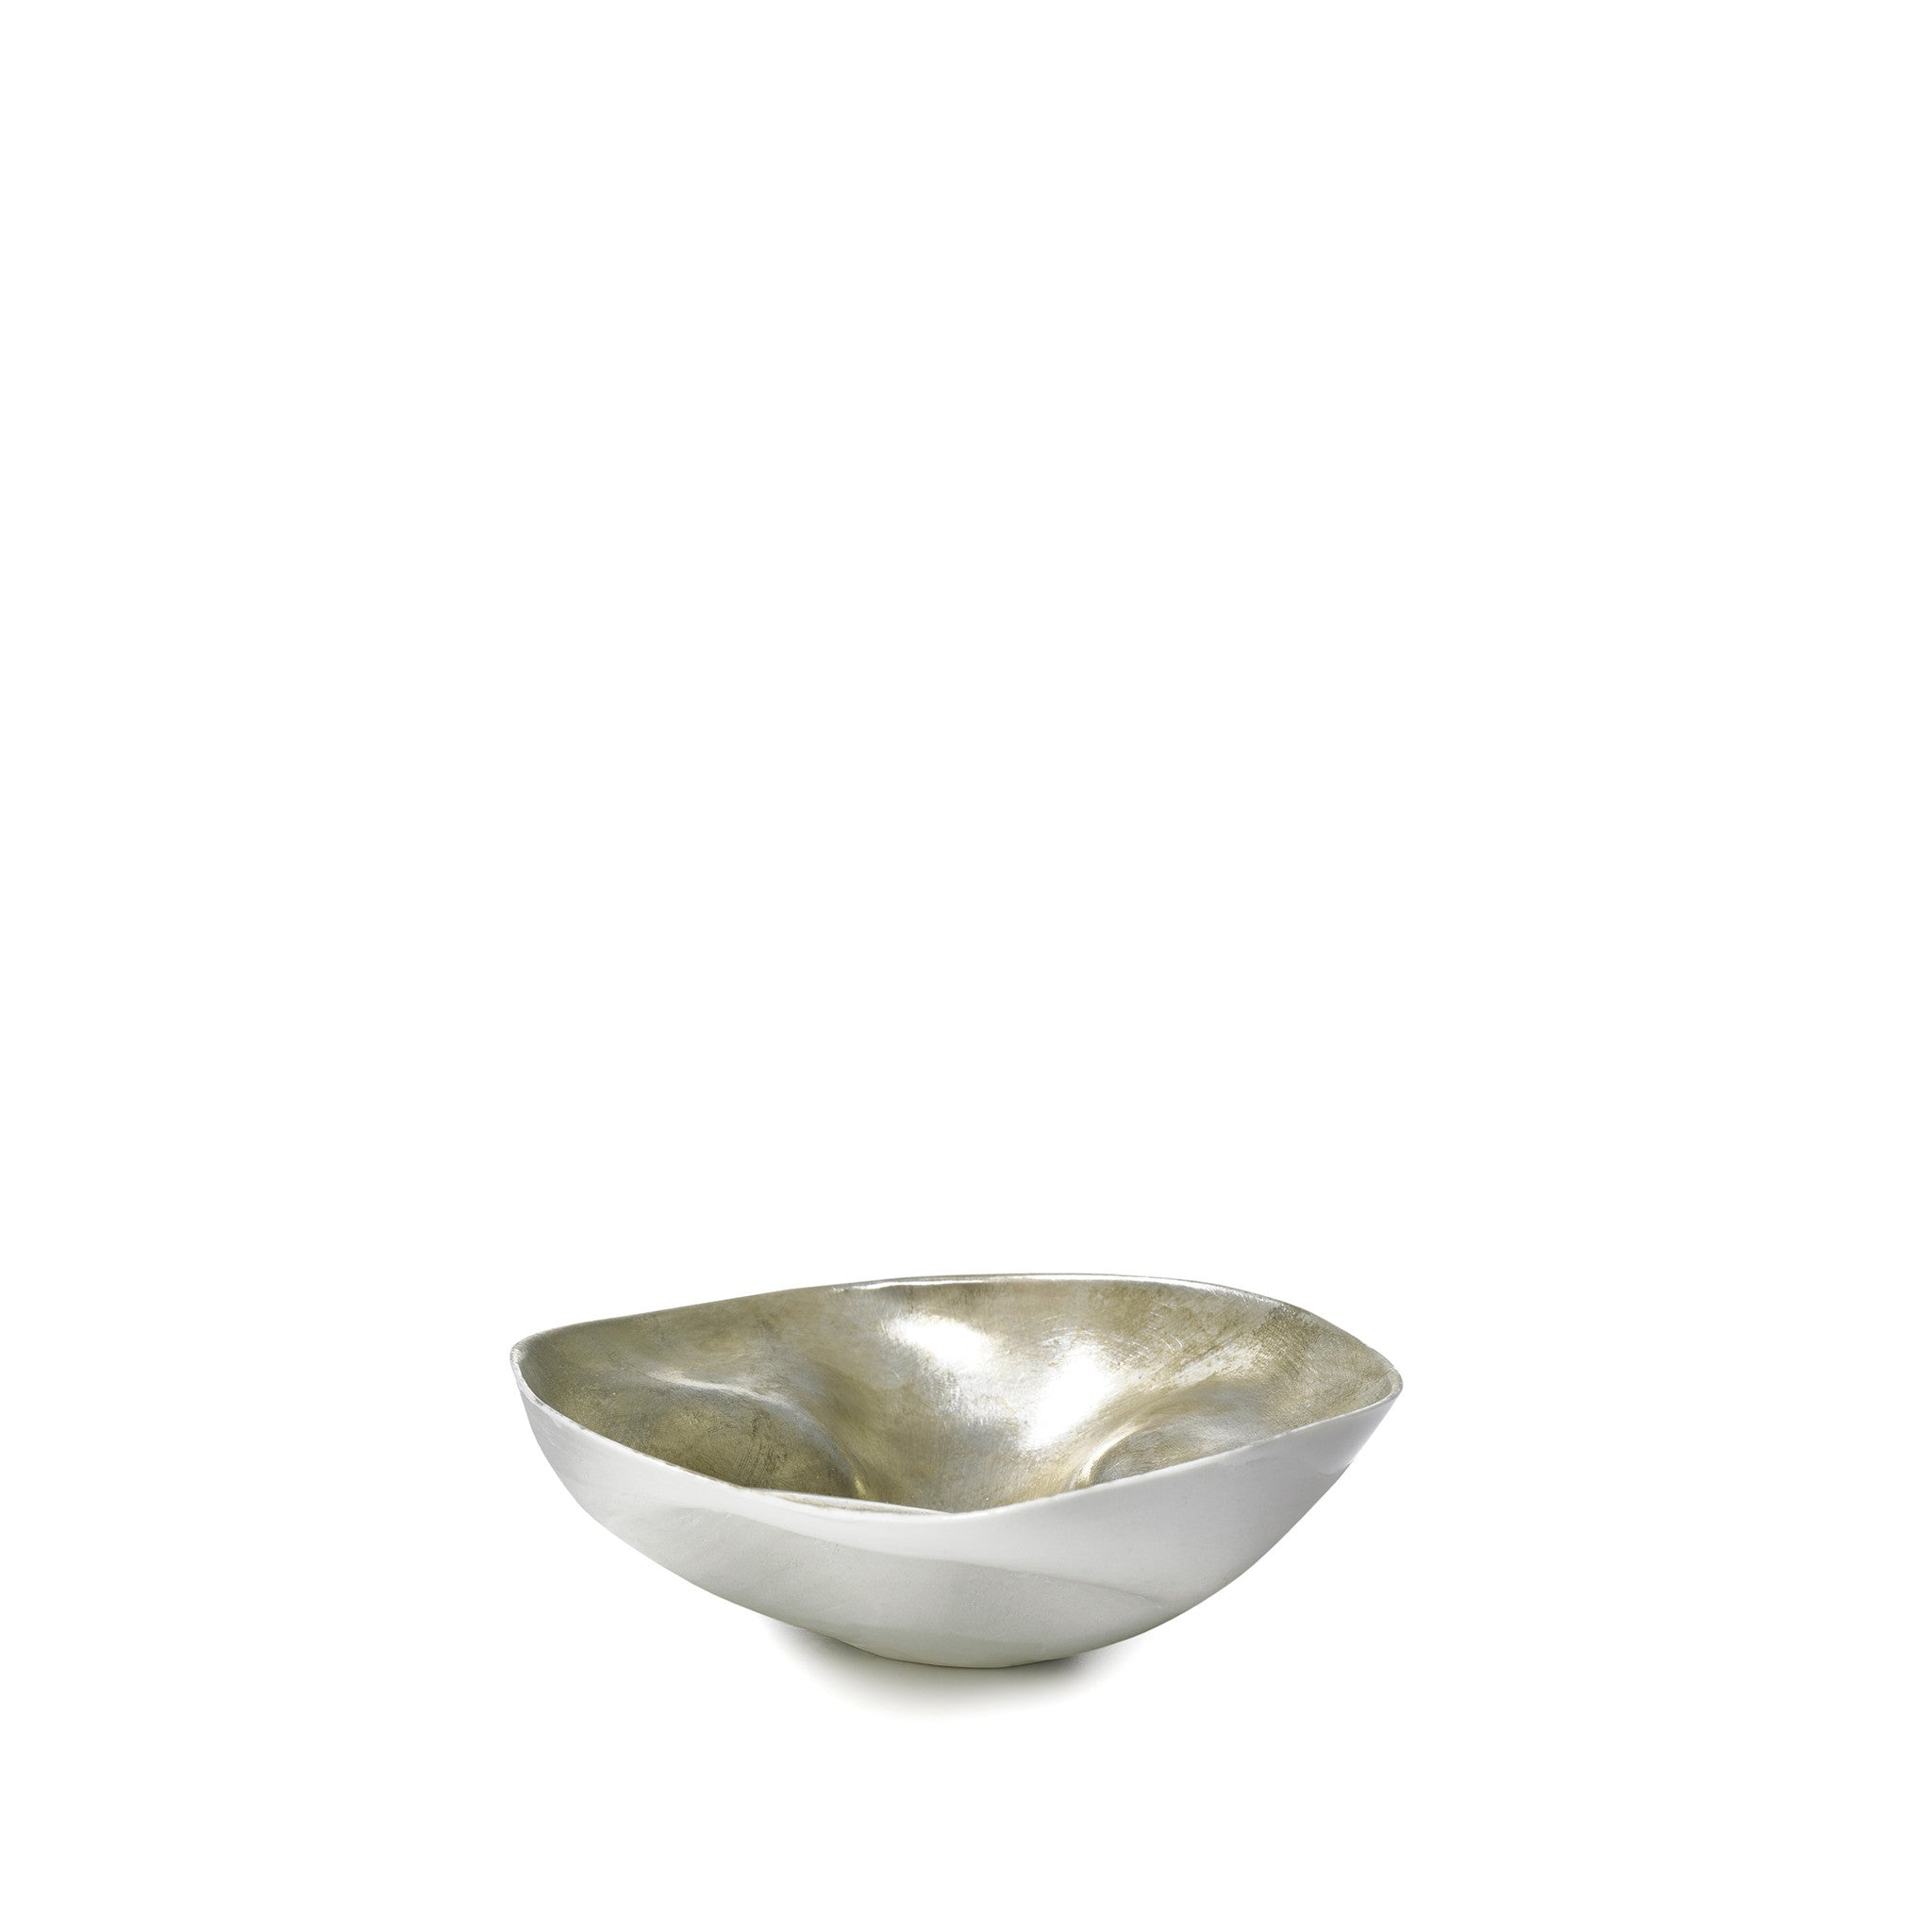 Small Porcelain Shell Bowl in Matte Silver, 13cm